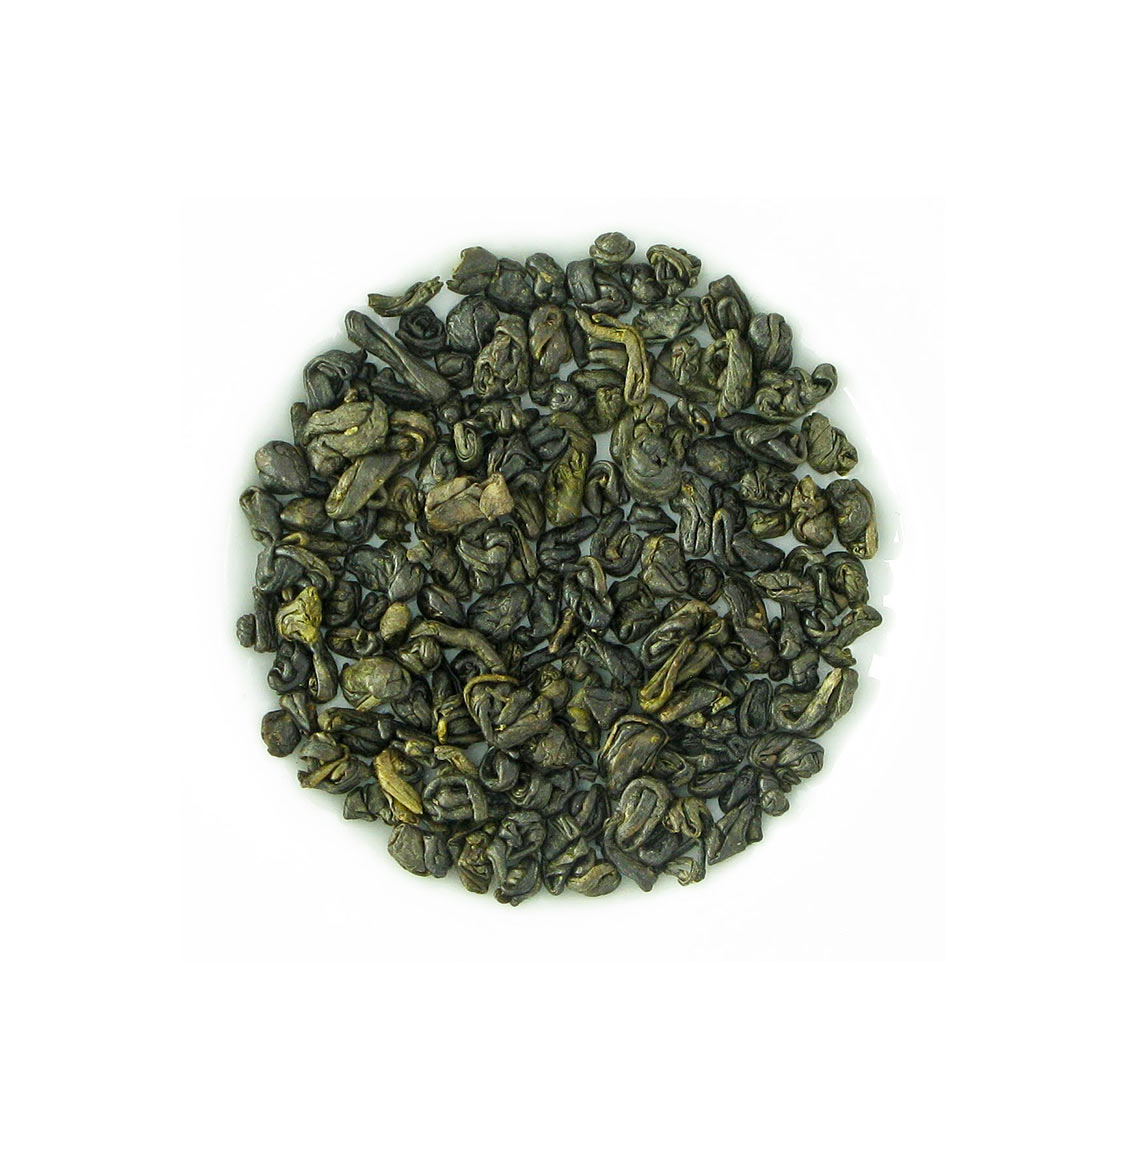 Kusmi Tea Gunpowder Green Tea 125g